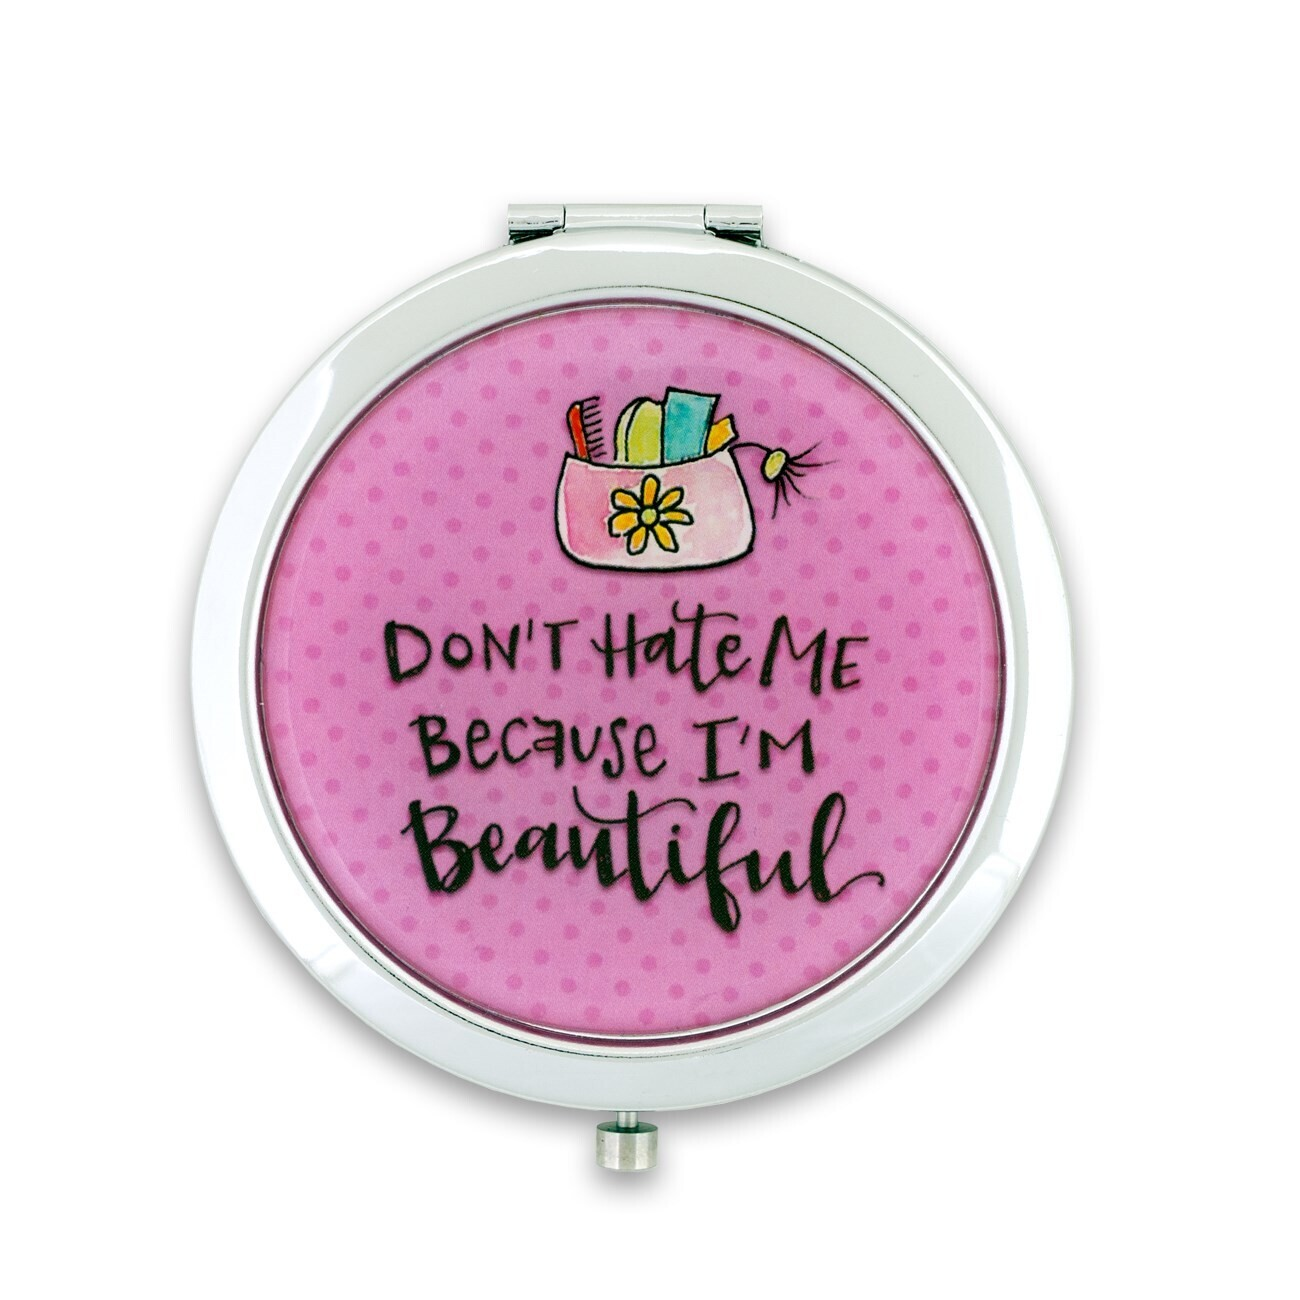 Brownlow 79589 Don't Hate Me Compact Mirror